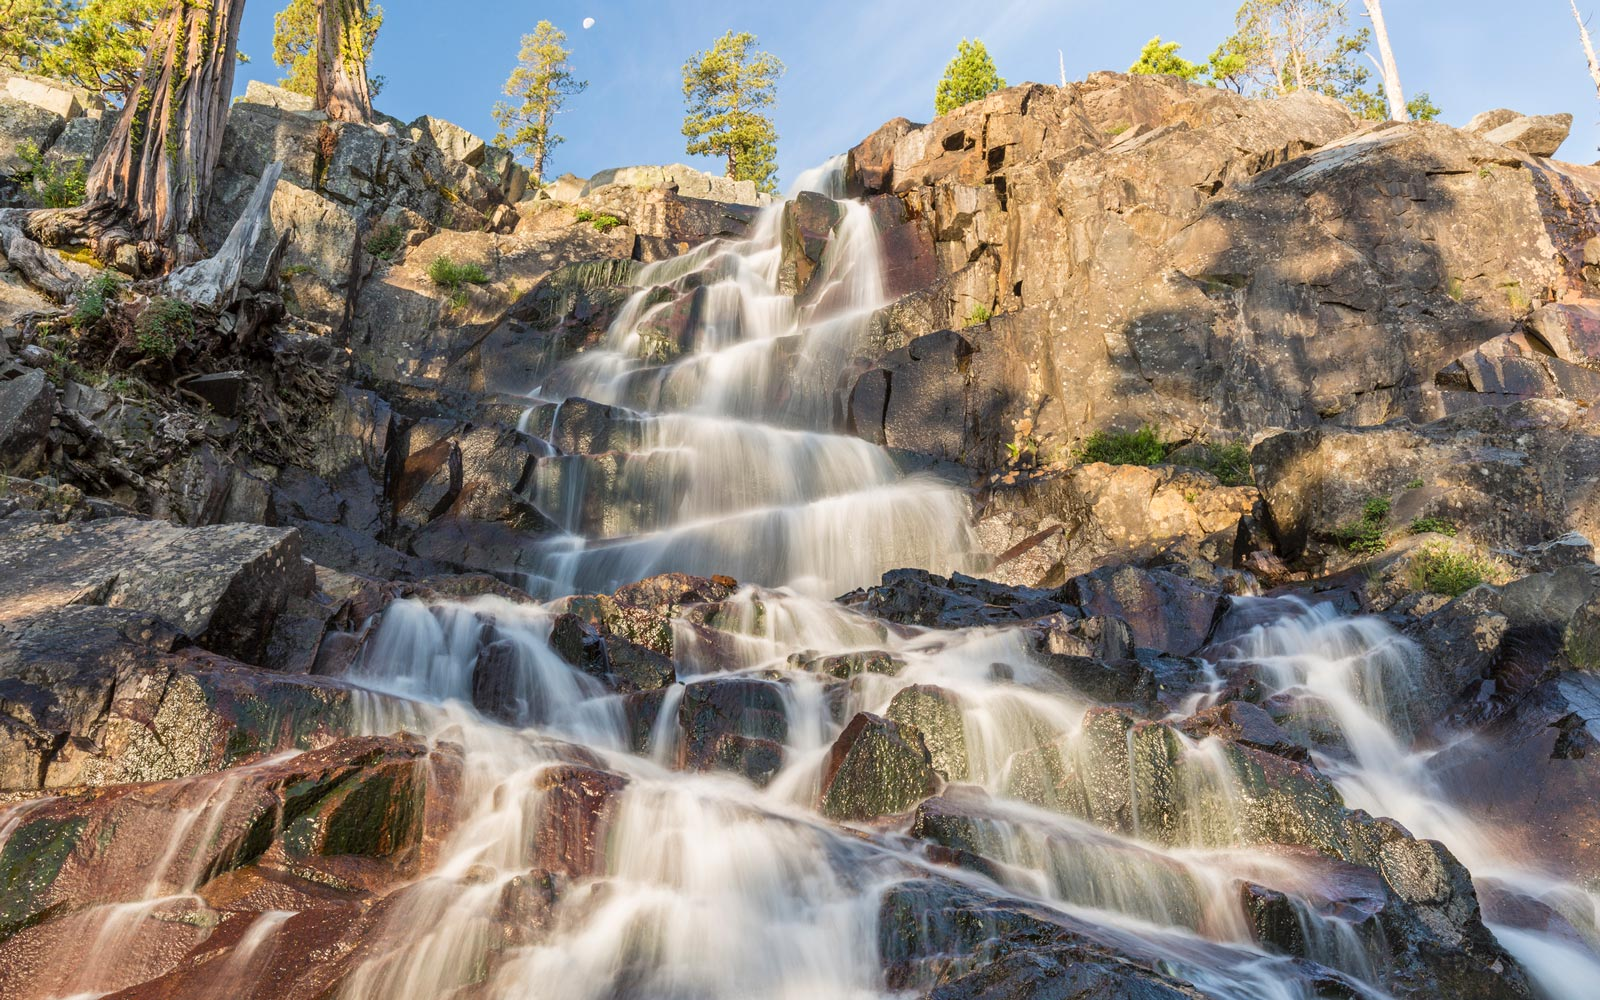 Hiker Swept to Her Death at Lake Tahoe Waterfall